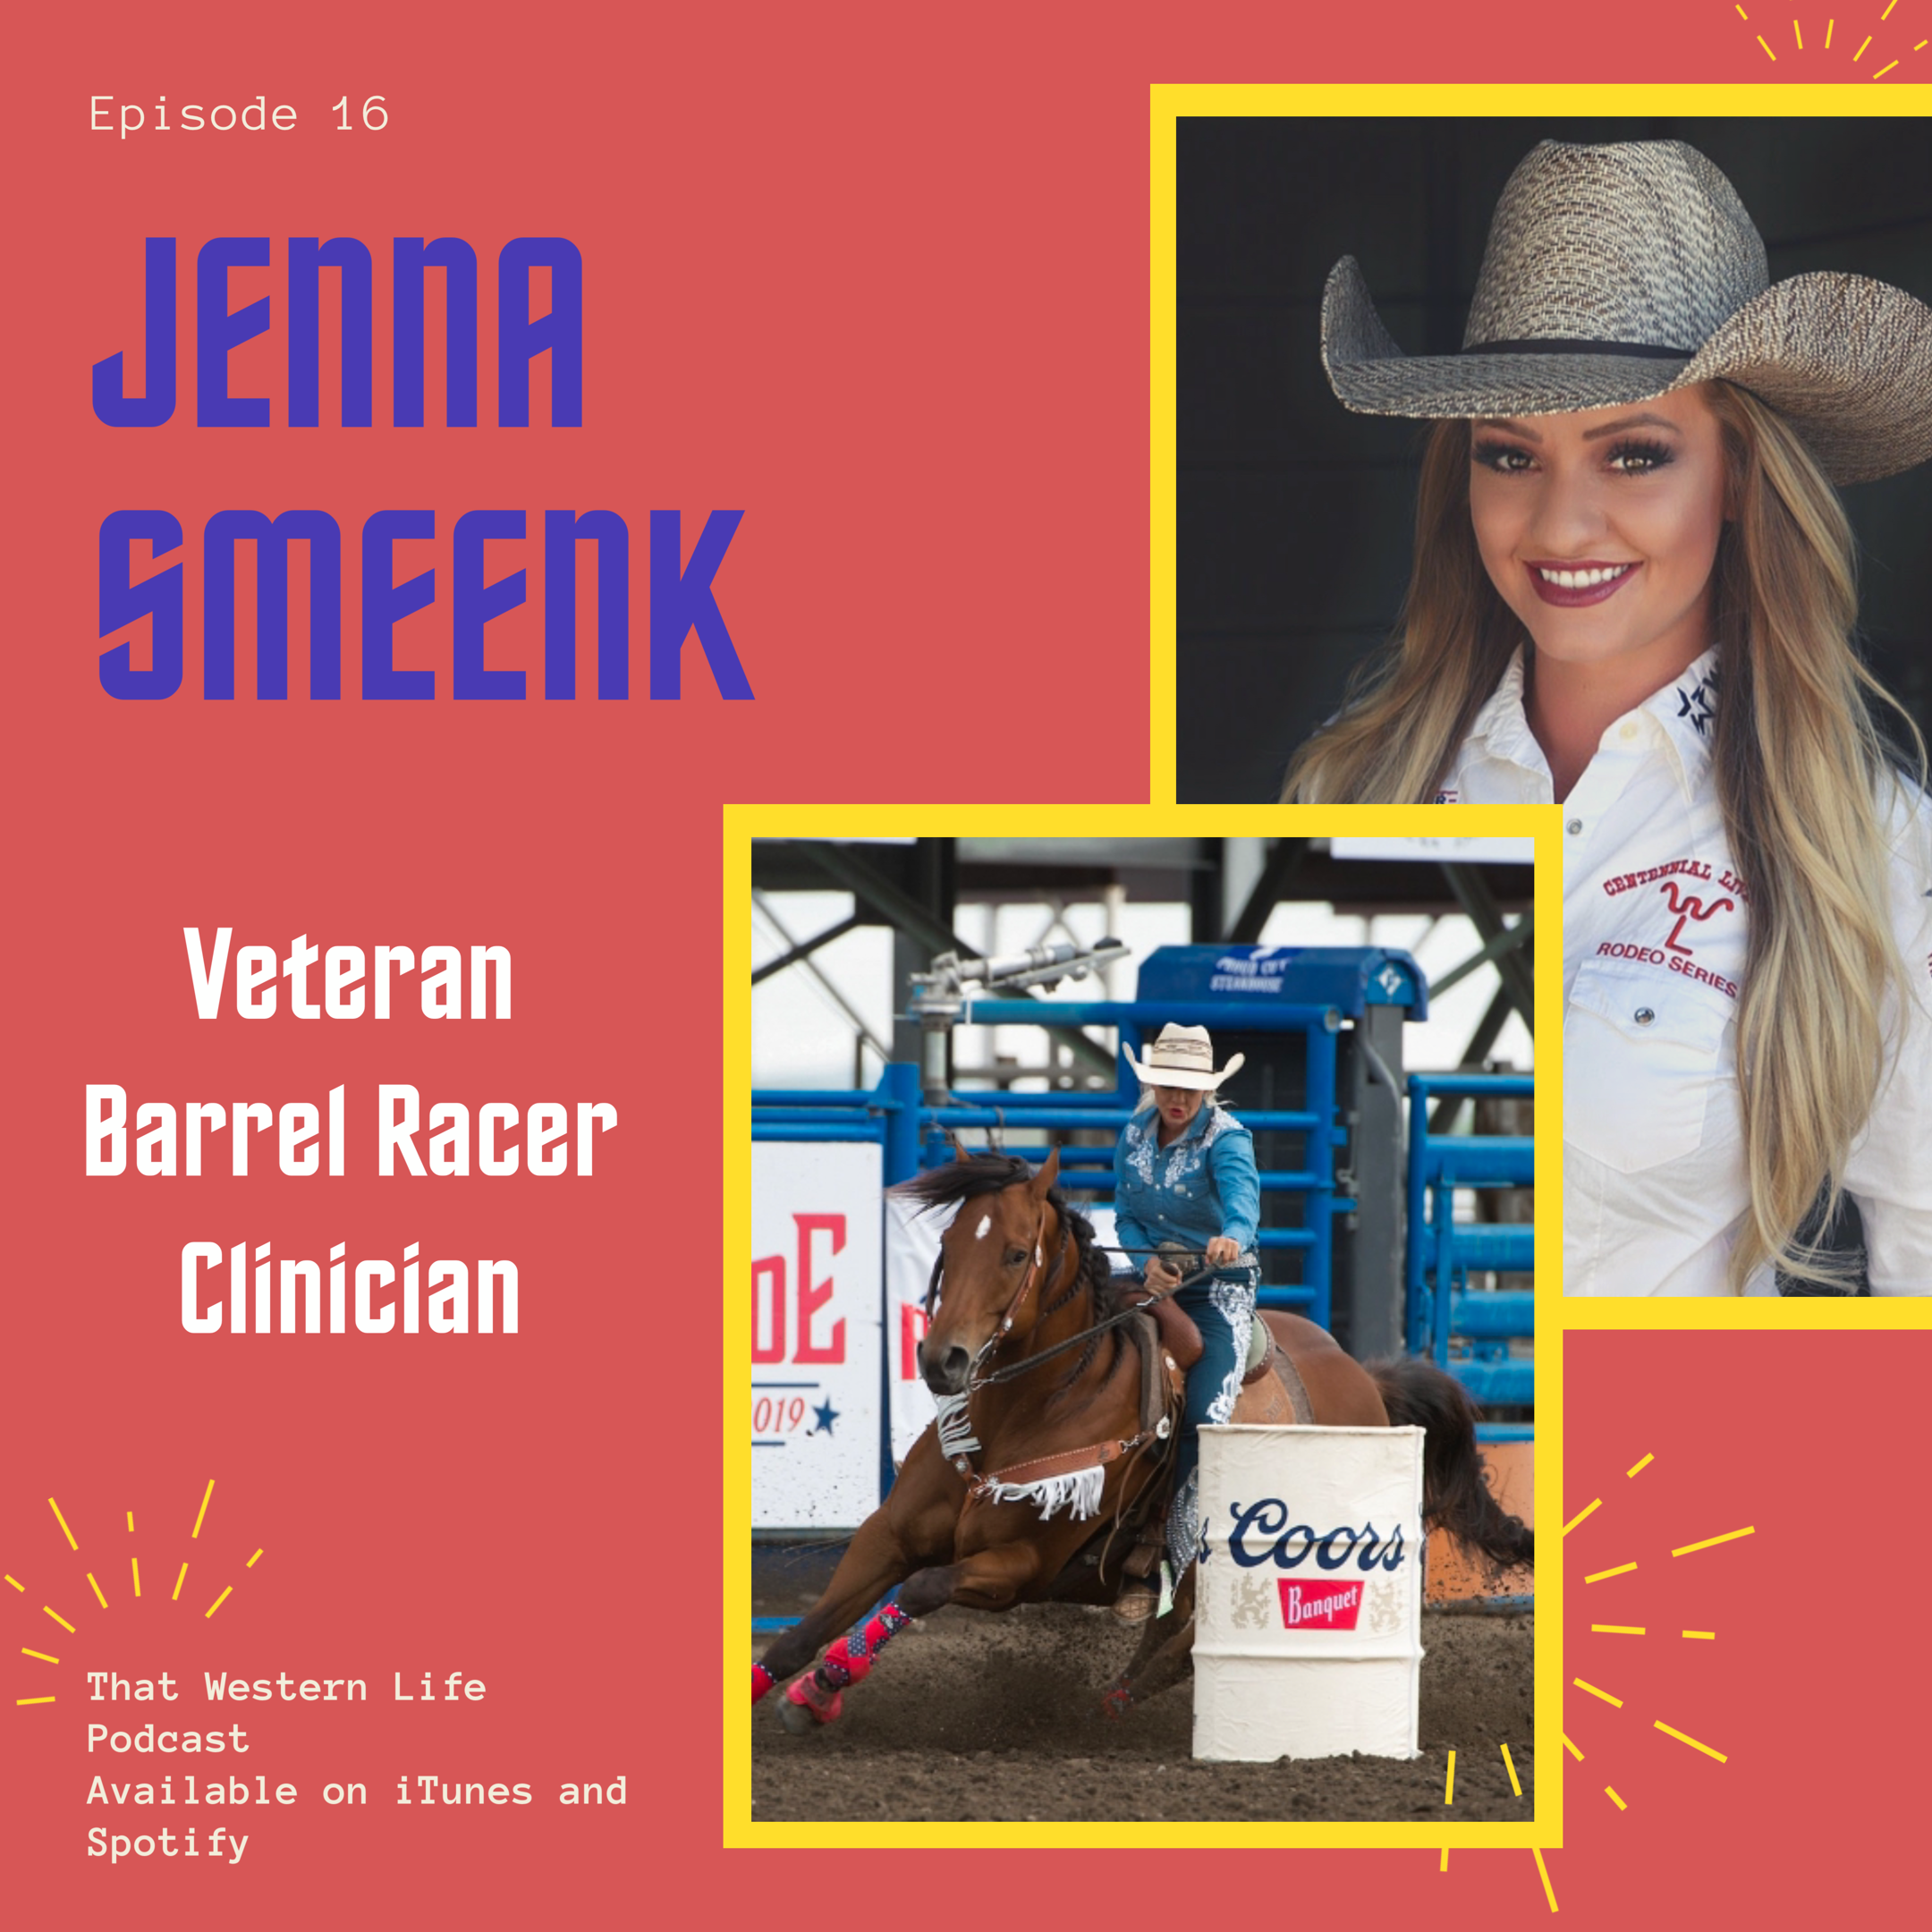 Jenna Smeenk chats about everything from her military career, being a professional barrel racer and running clinics internationally!